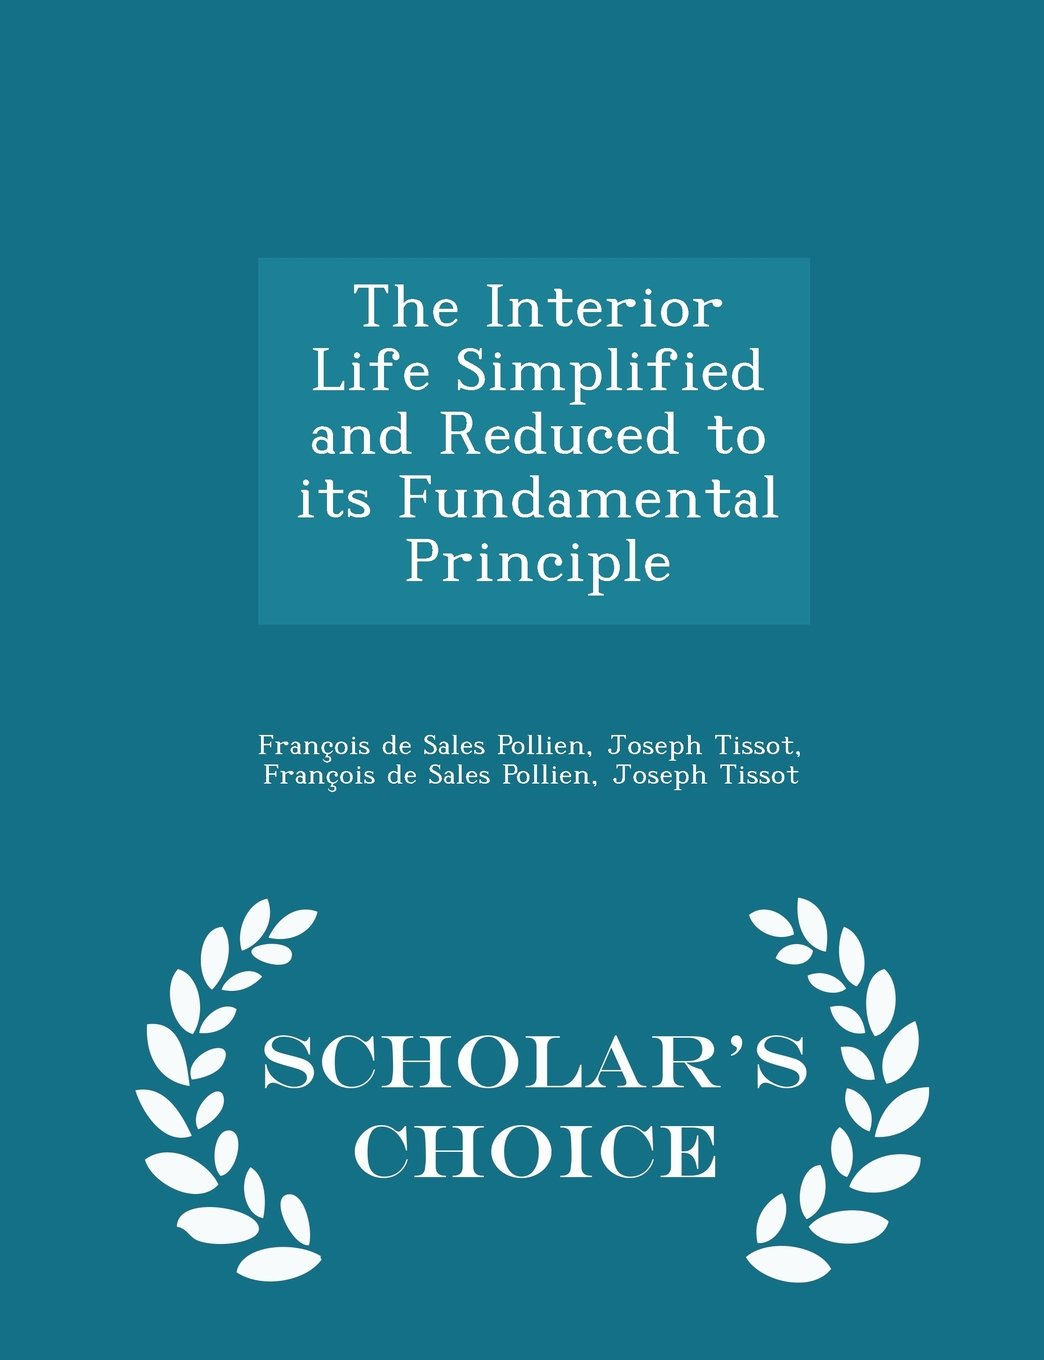 Download The Interior Life Simplified and Reduced to its Fundamental Principle - Scholar's Choice Edition PDF